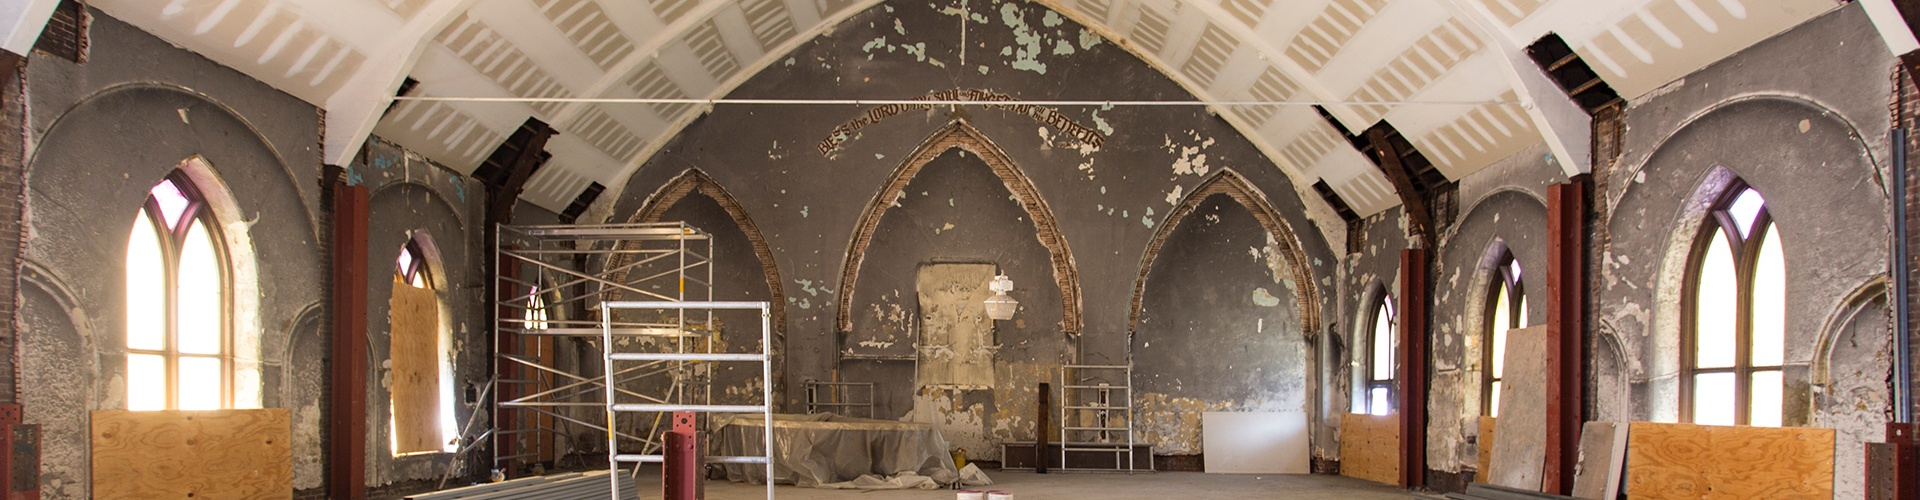 Inside the Renovation: Mercer Street Church